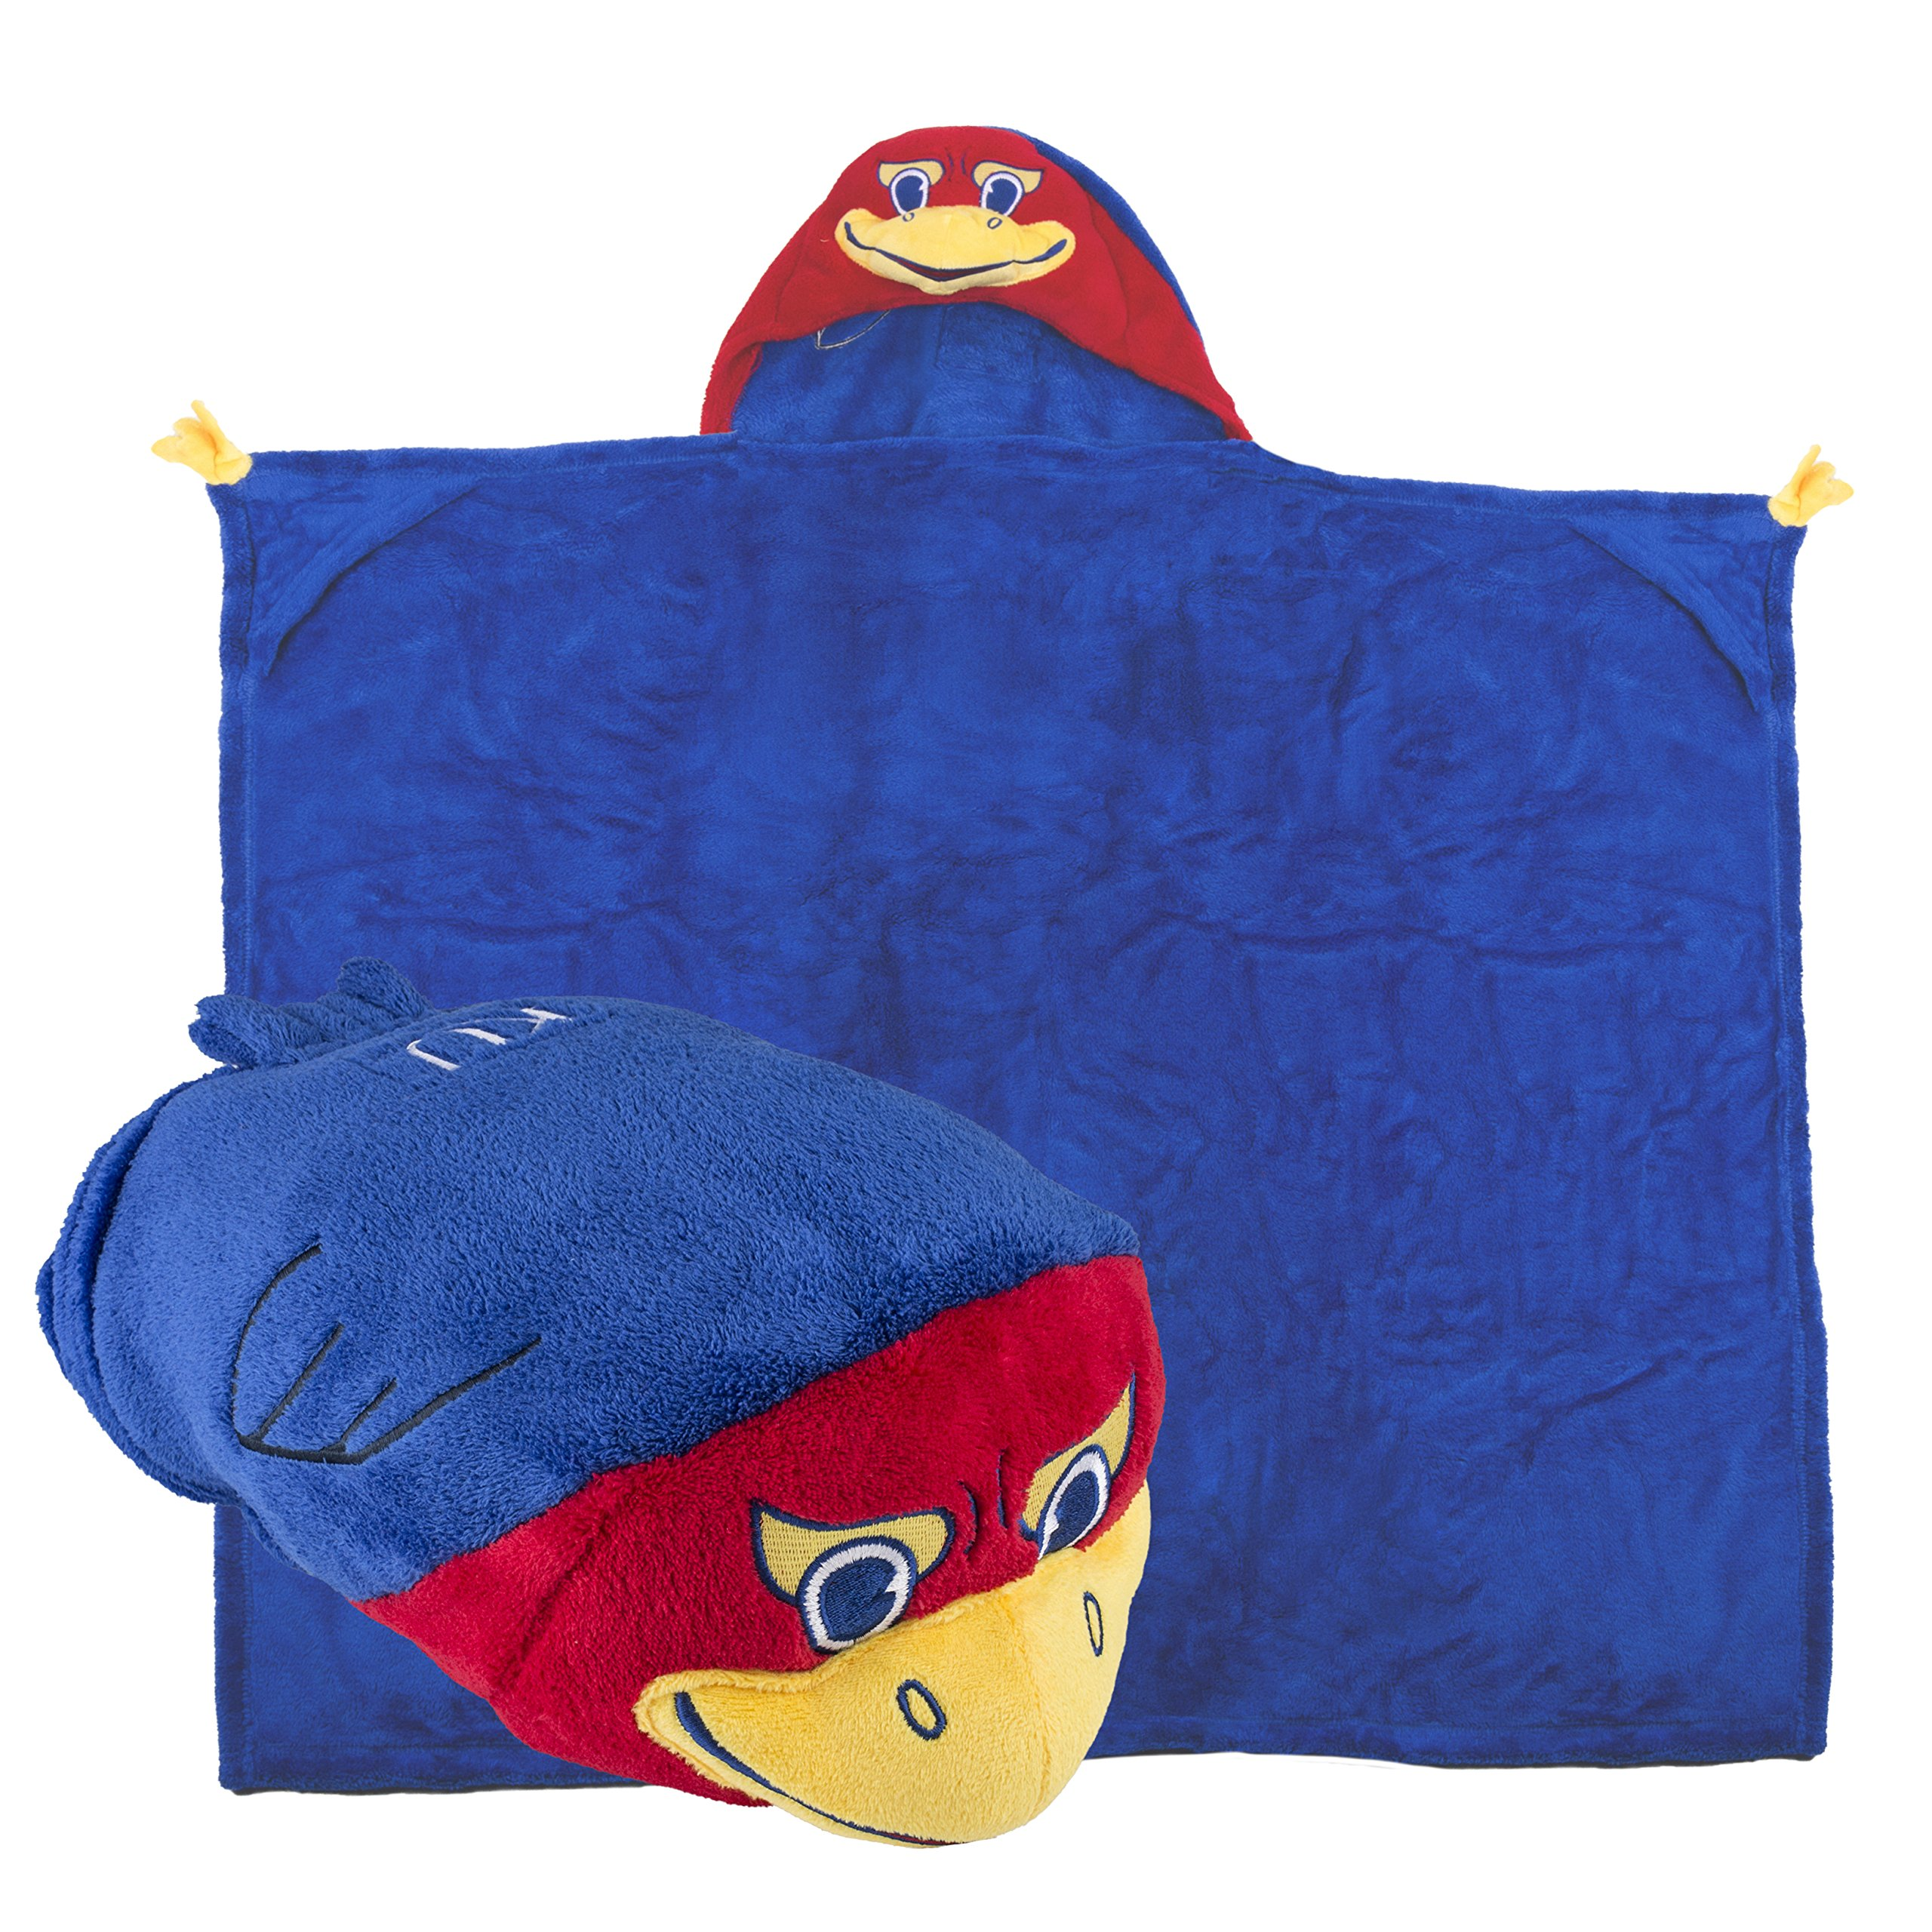 Comfy Critters Stuffed Animal Blanket - College Mascot, University of Kansas 'Big Jay' - Kids huggable pillow and blanket perfect for the big game, tailgating, pretend play, travel, and much more